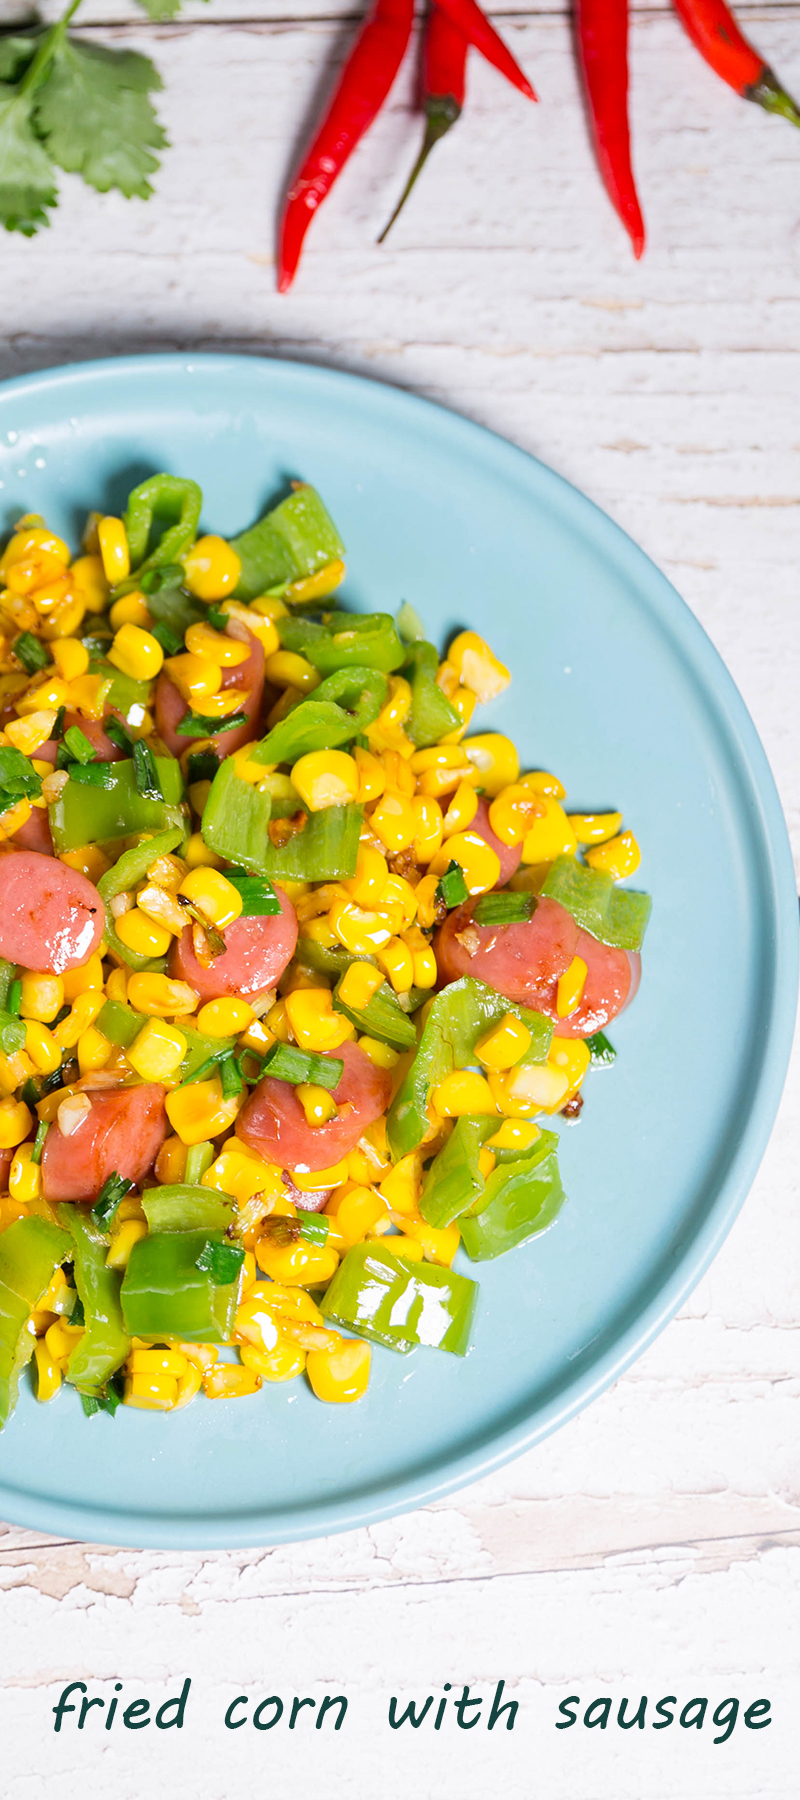 fried-corn-with-sausage-recipes